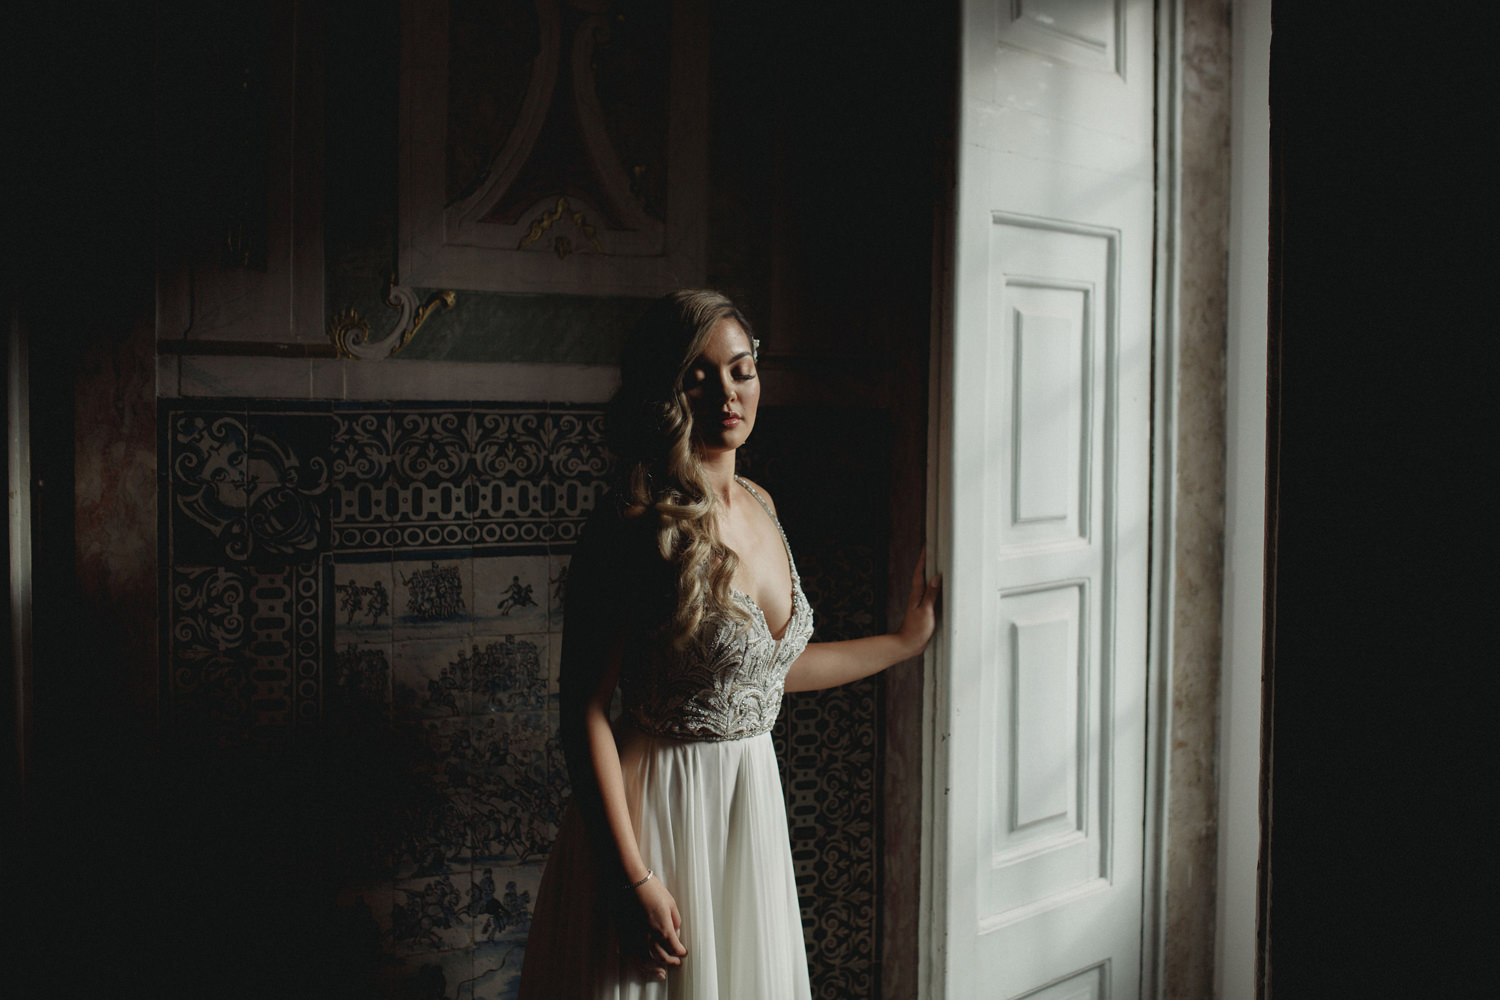 bride standing in front of portuguese tiles before wedding ceremony in Palacio Maruqes de Fronteira, Lisbon, Portugal